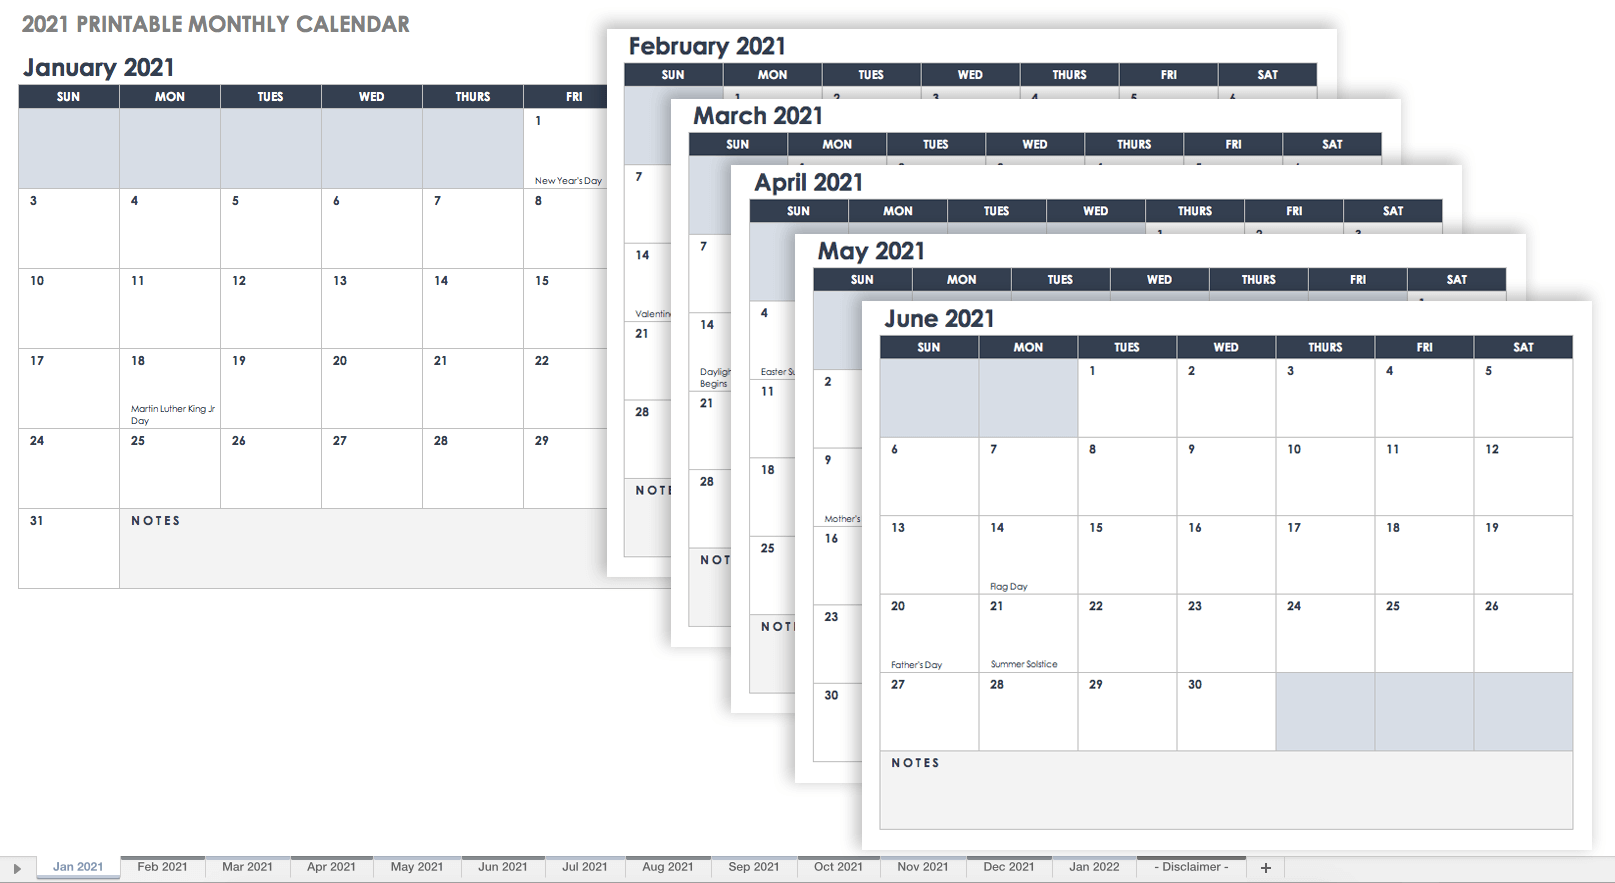 2021 Printable Monthly Calendar - Portrait